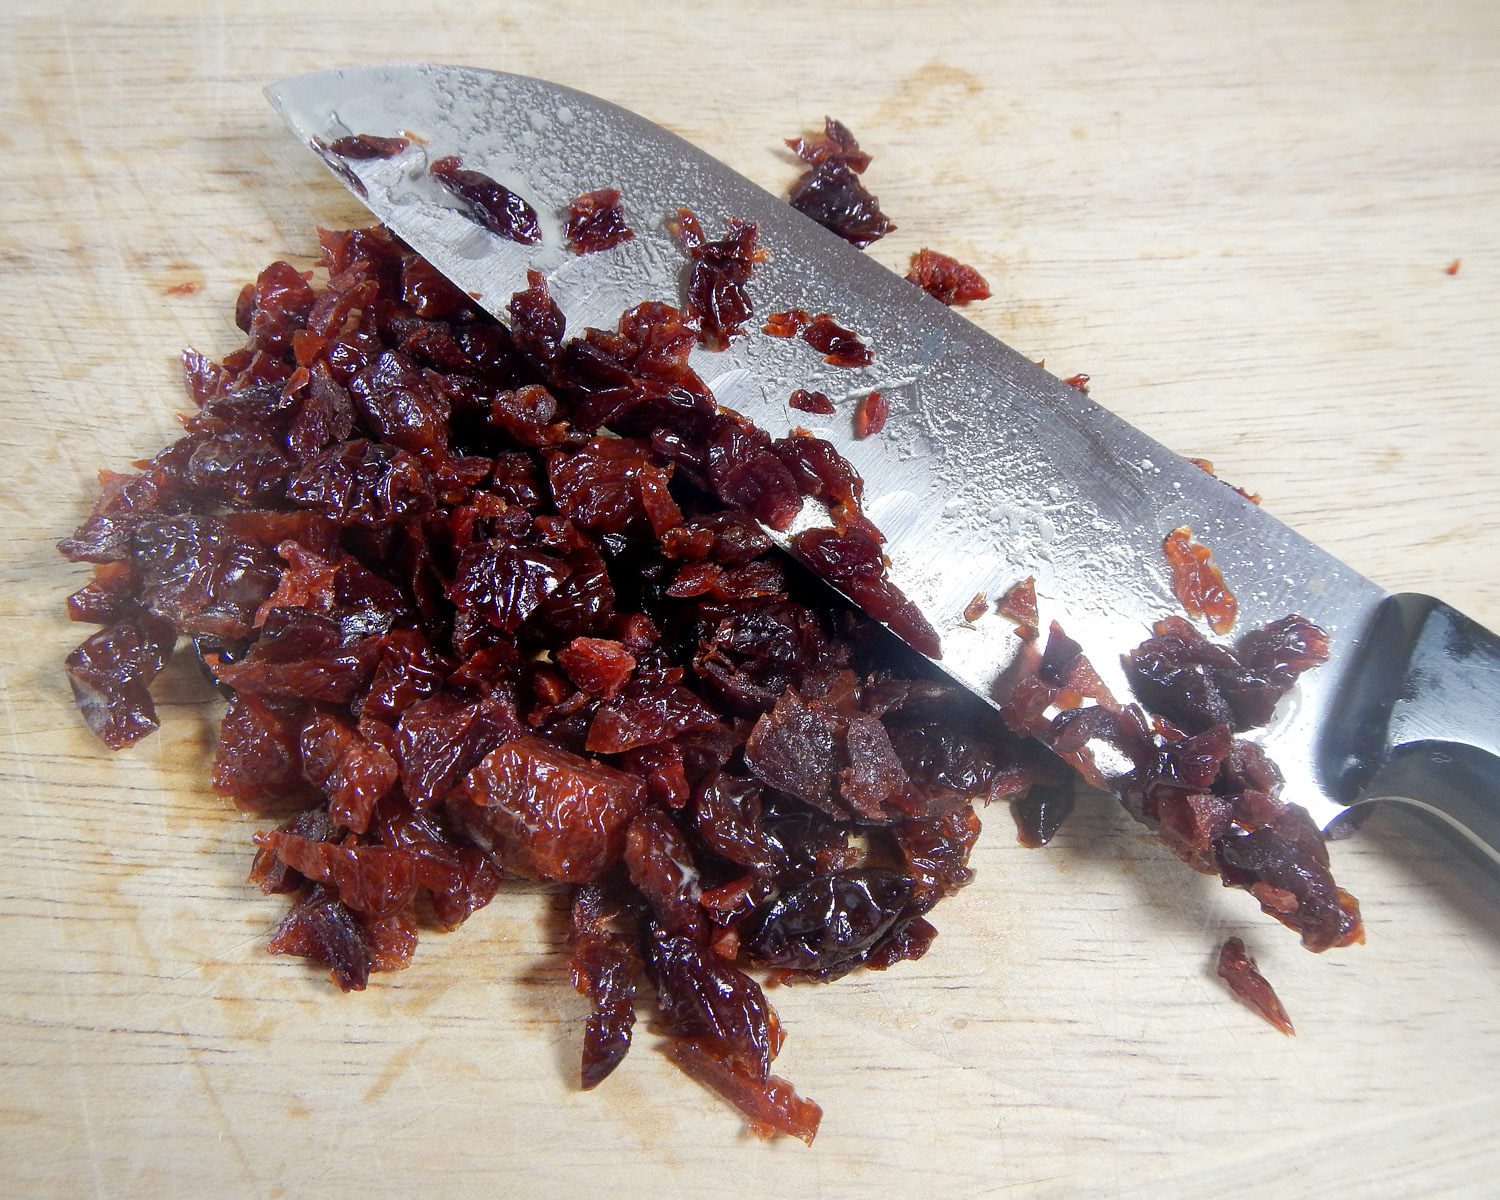 Knife Cutting Dried Cherries for Brownies